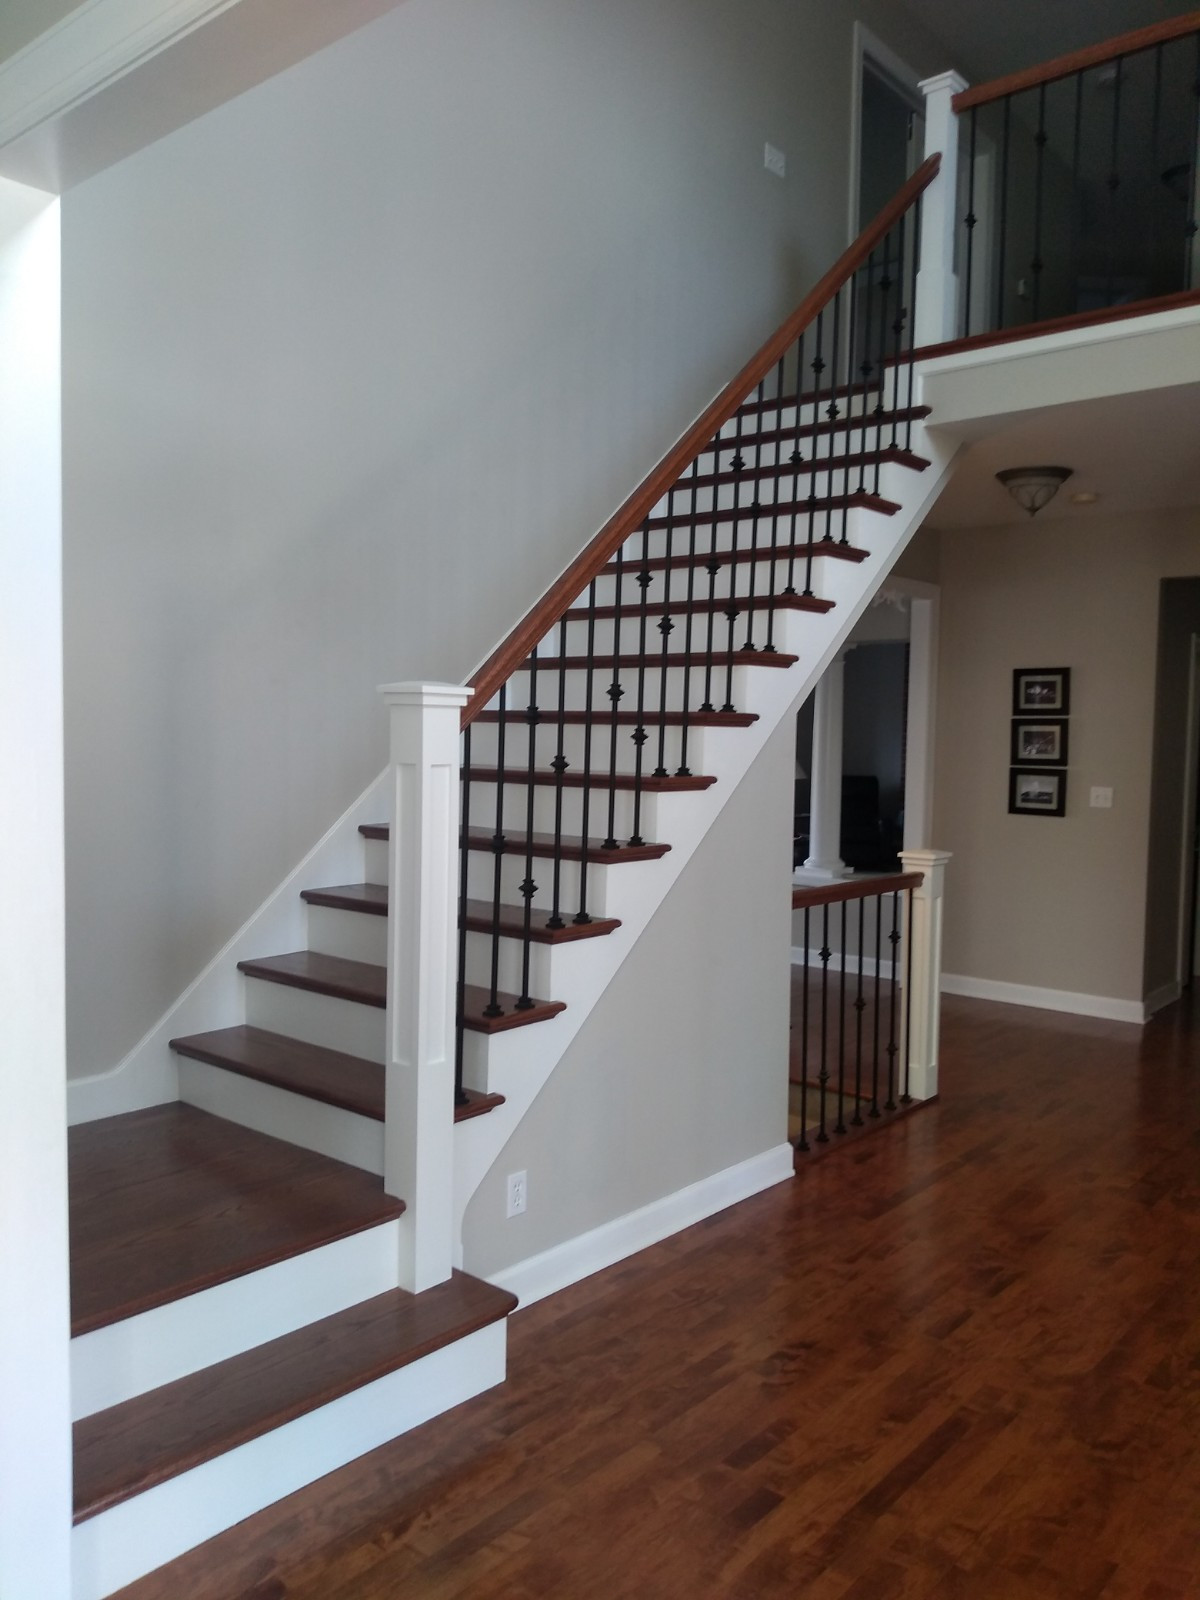 White newels with oak rails and iron balusters